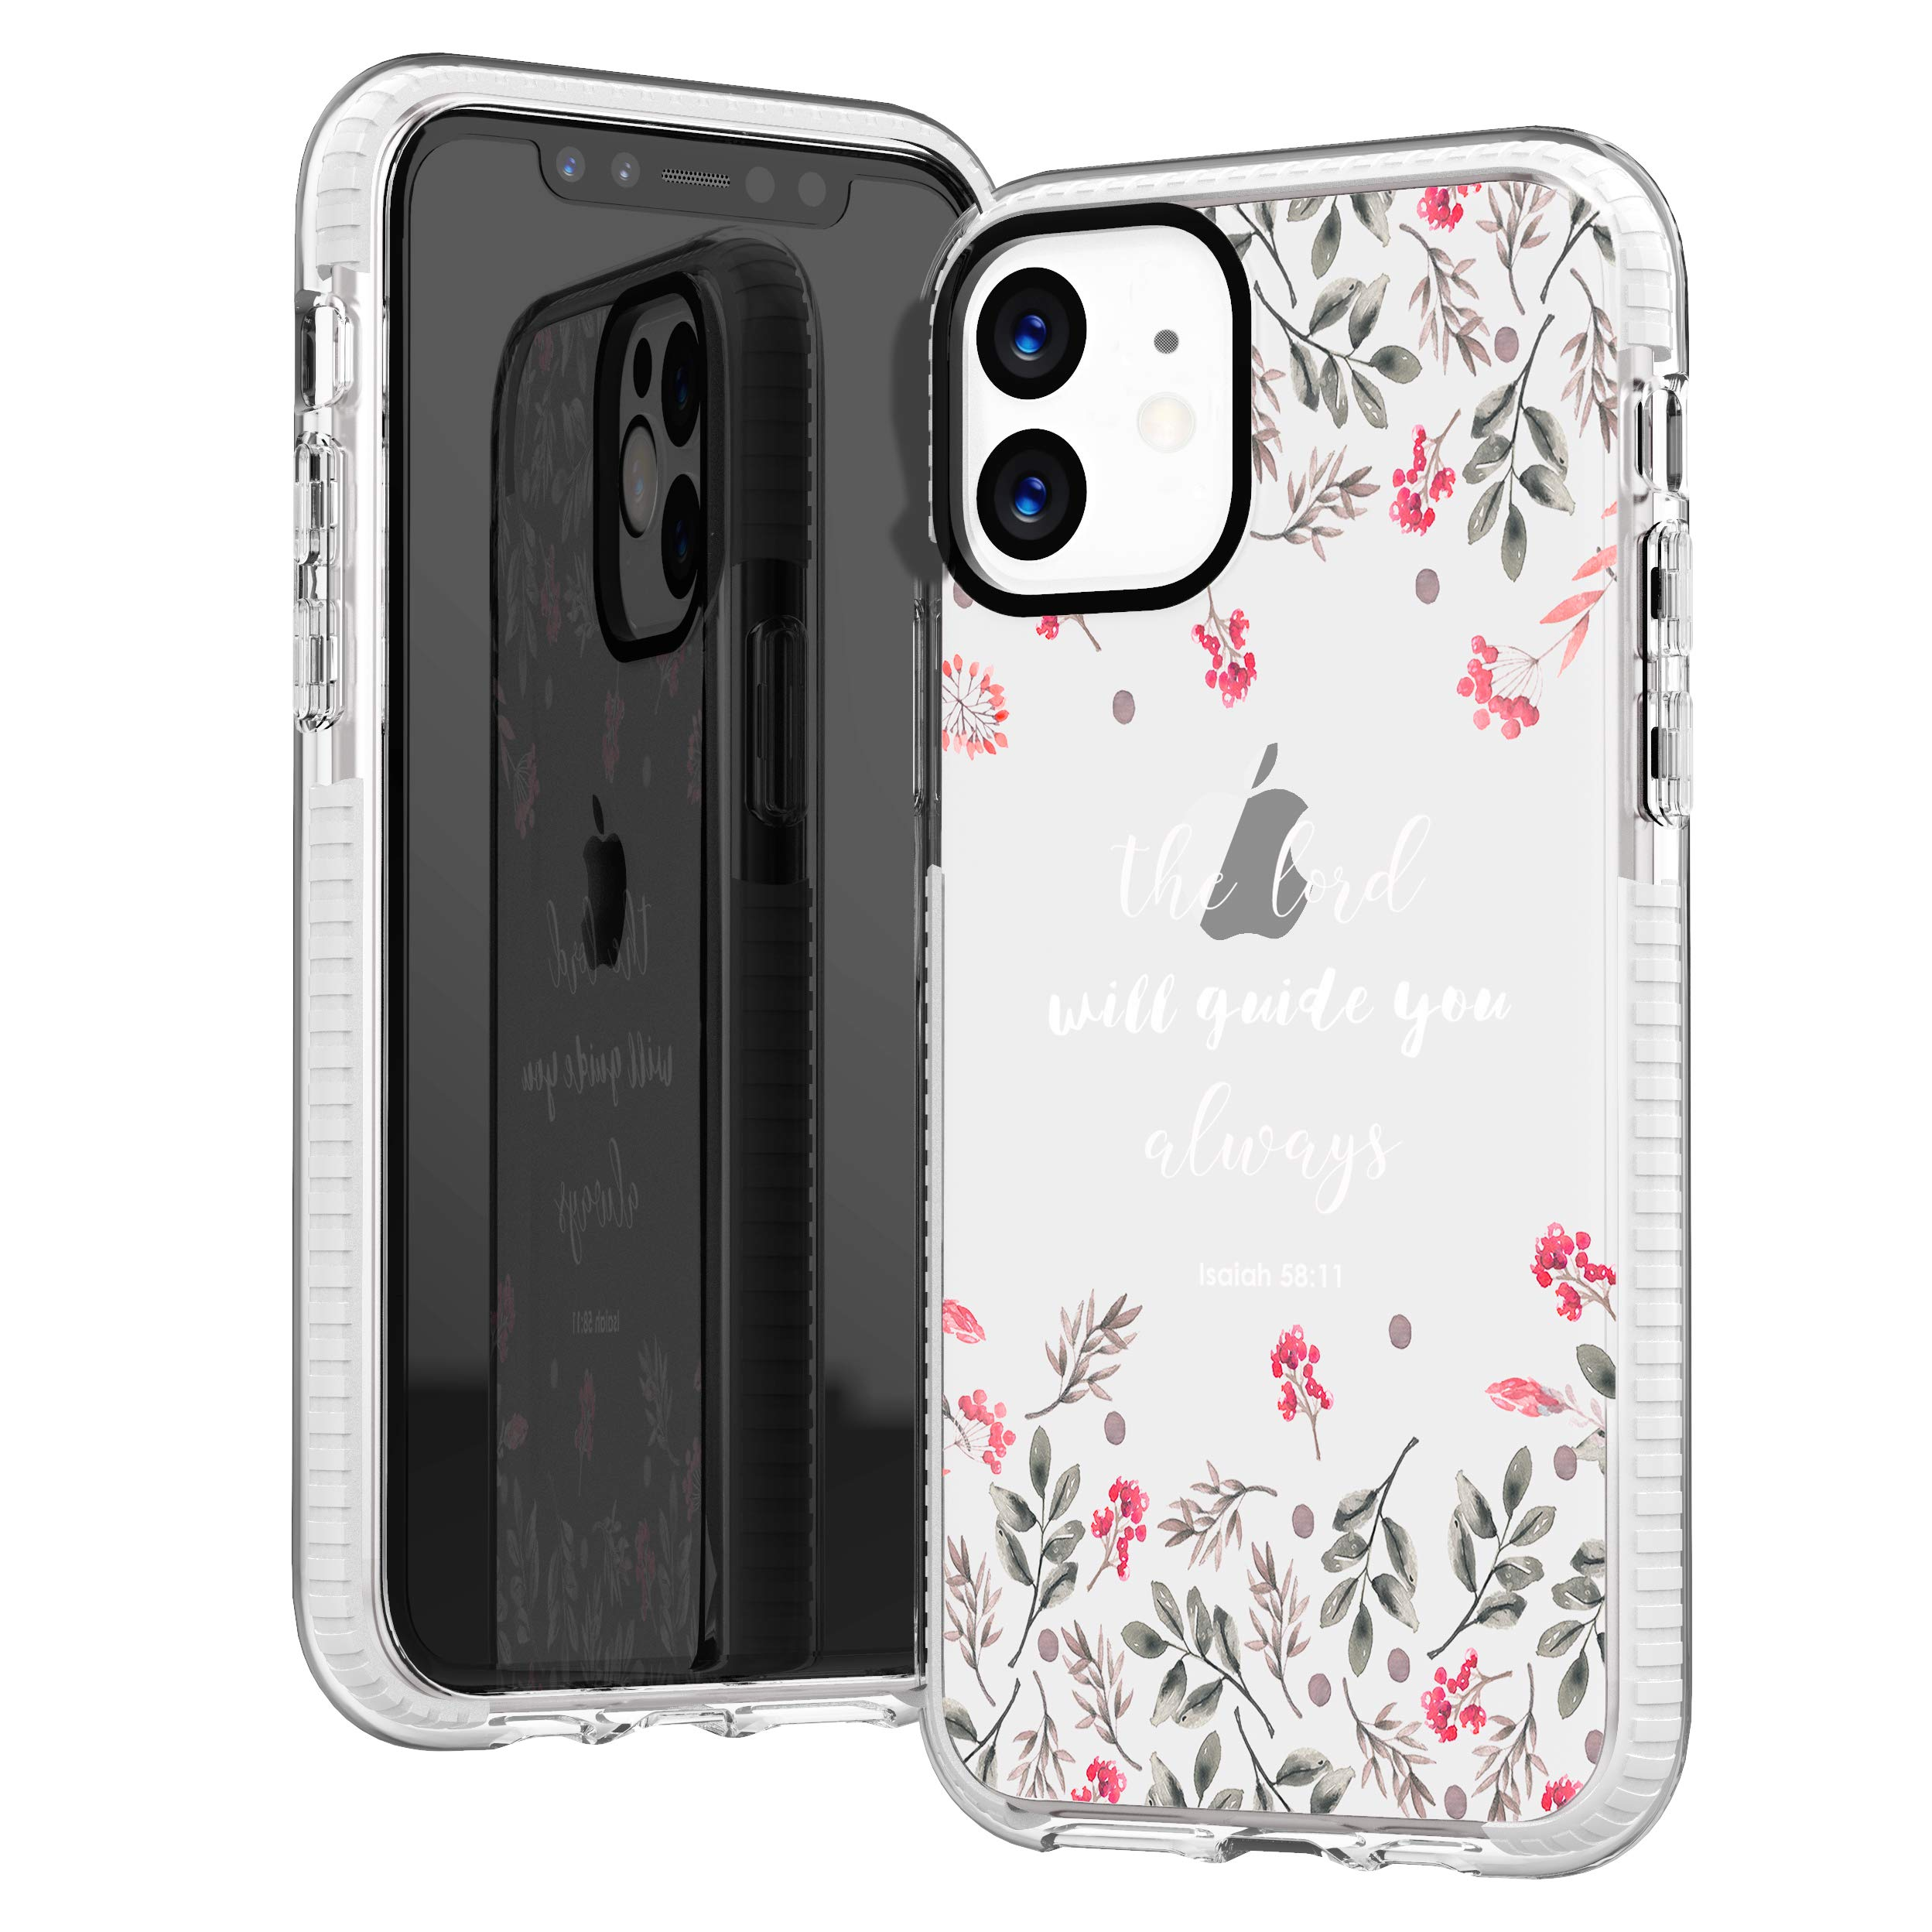 iPhone 11 Case,Spring Floral Flowers Leaves Bible Verses Inspirational Christian Christ Lord Quotes Isaiah 58:11 Trendy Cute Girls Women Soft Protective Clear Case With Design Compatible for iPhone 11